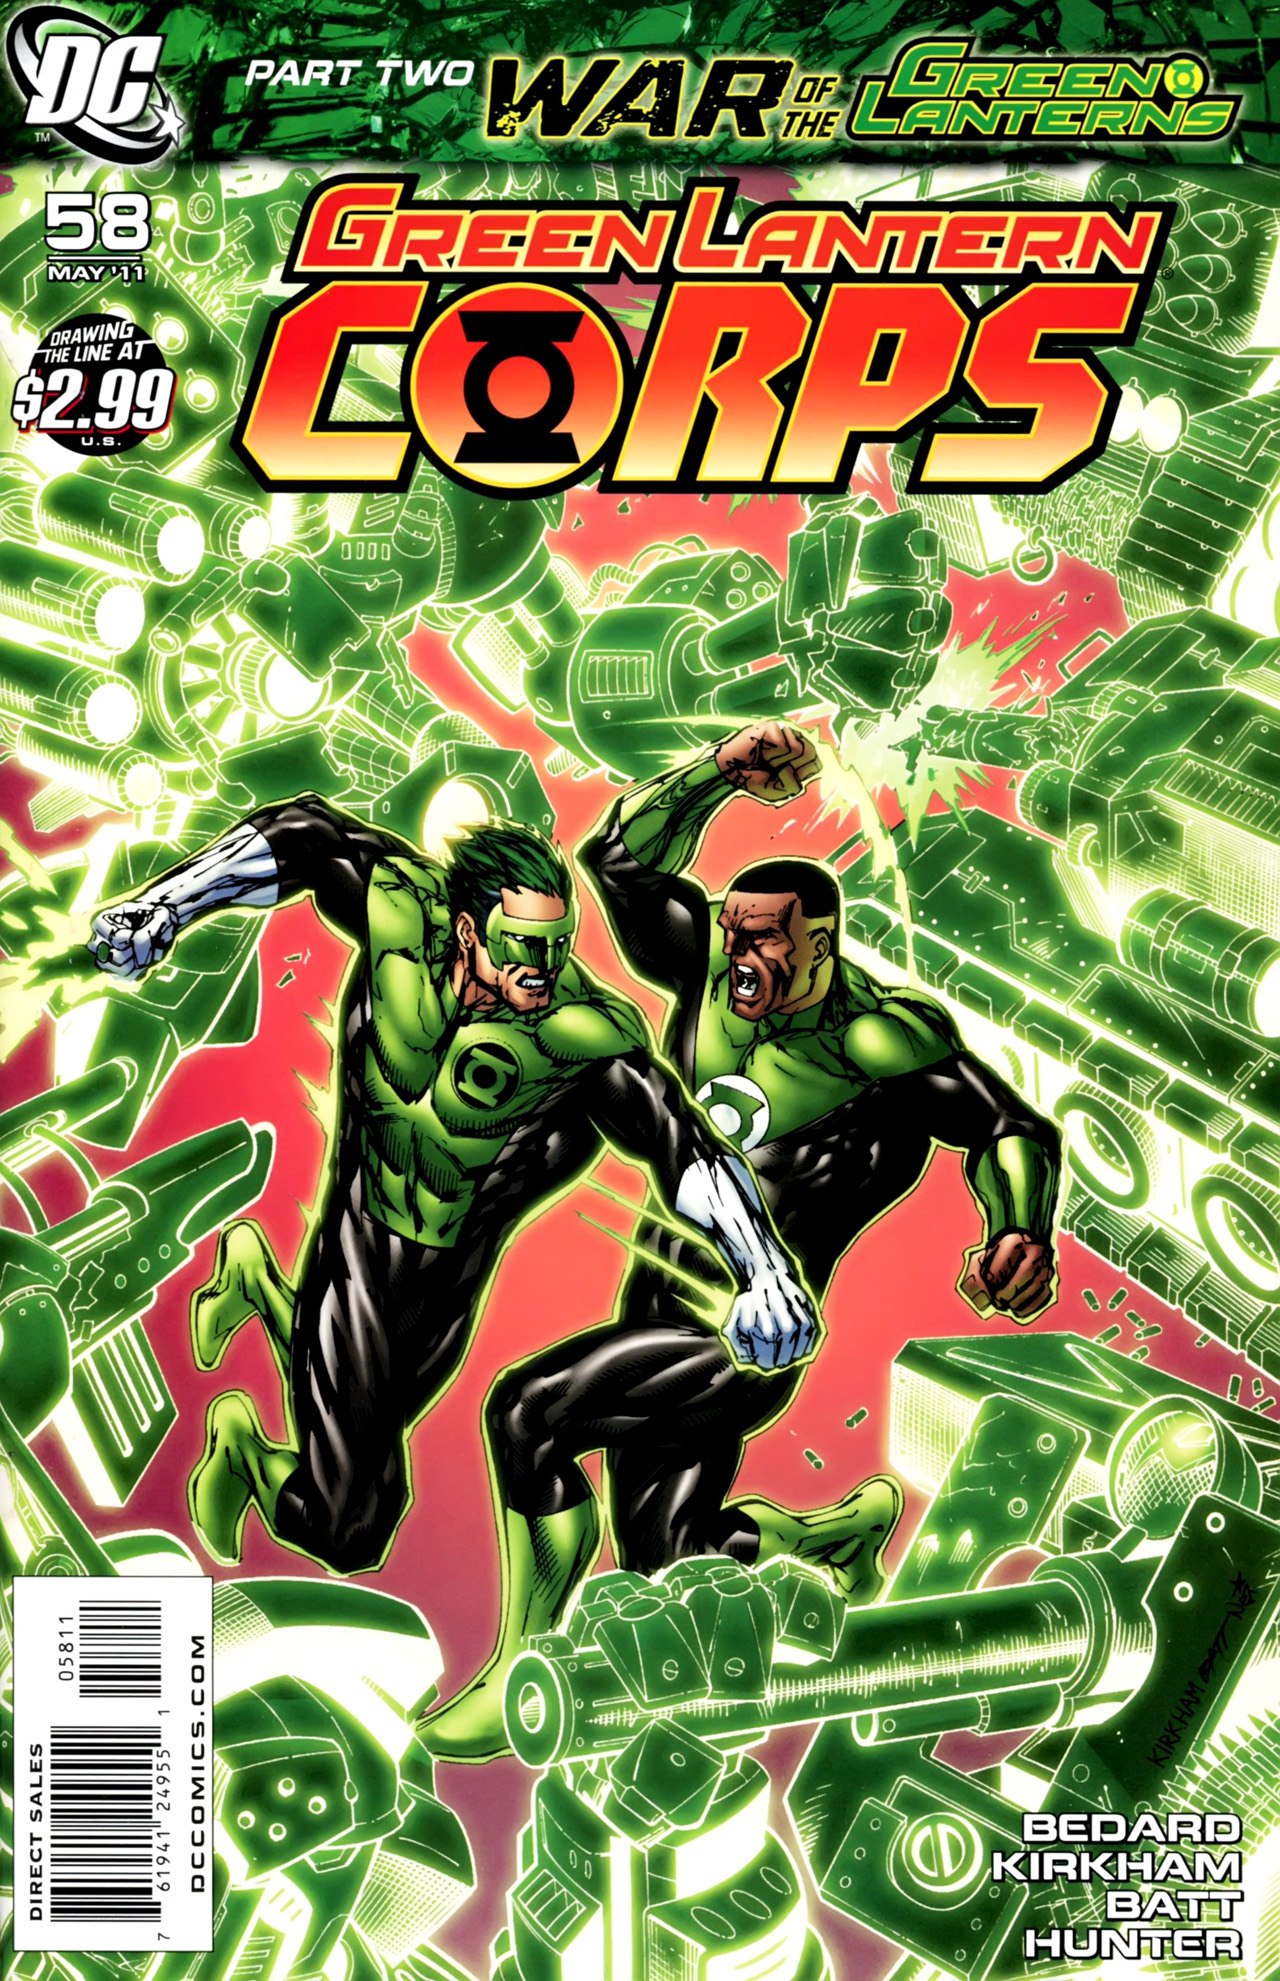 Green lantern corps comic cover - photo#24